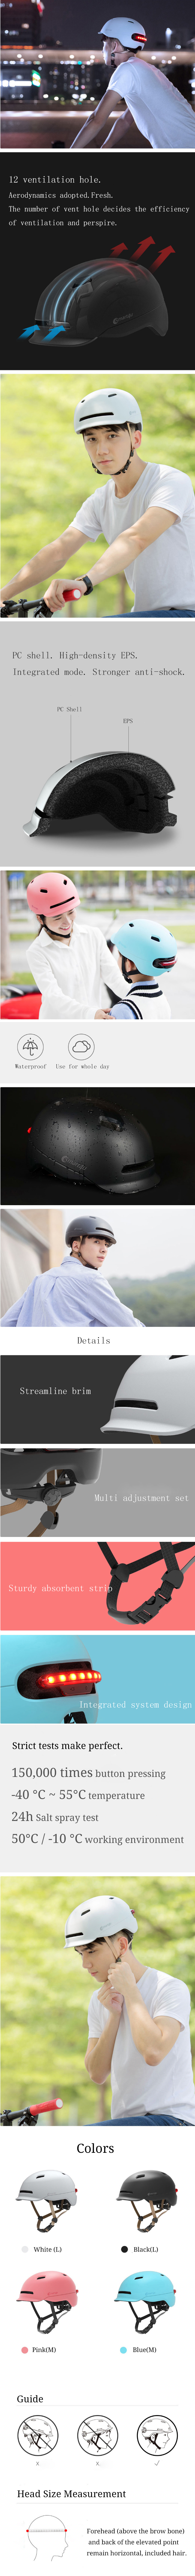 XIAOMI Smart4u SH50 Cycling Helmet Intelligent Back LED Light EPS Adjustable Breathable Ventilation IPX4 Motorcycle Mountain Road Scooter For Men Women